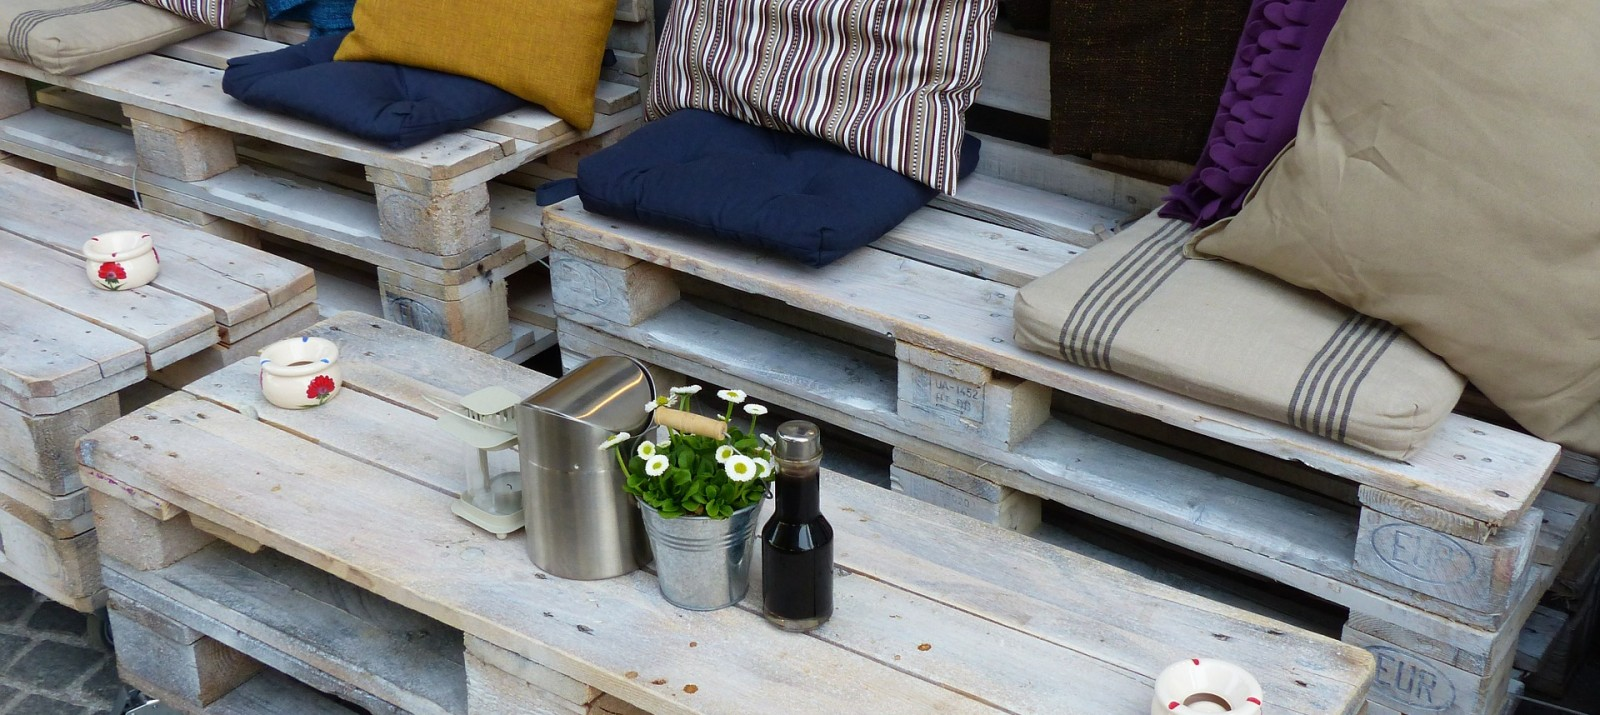 11 Diy Wood Pallet Ideas That Will Increase The E In Your Tiny Apartment